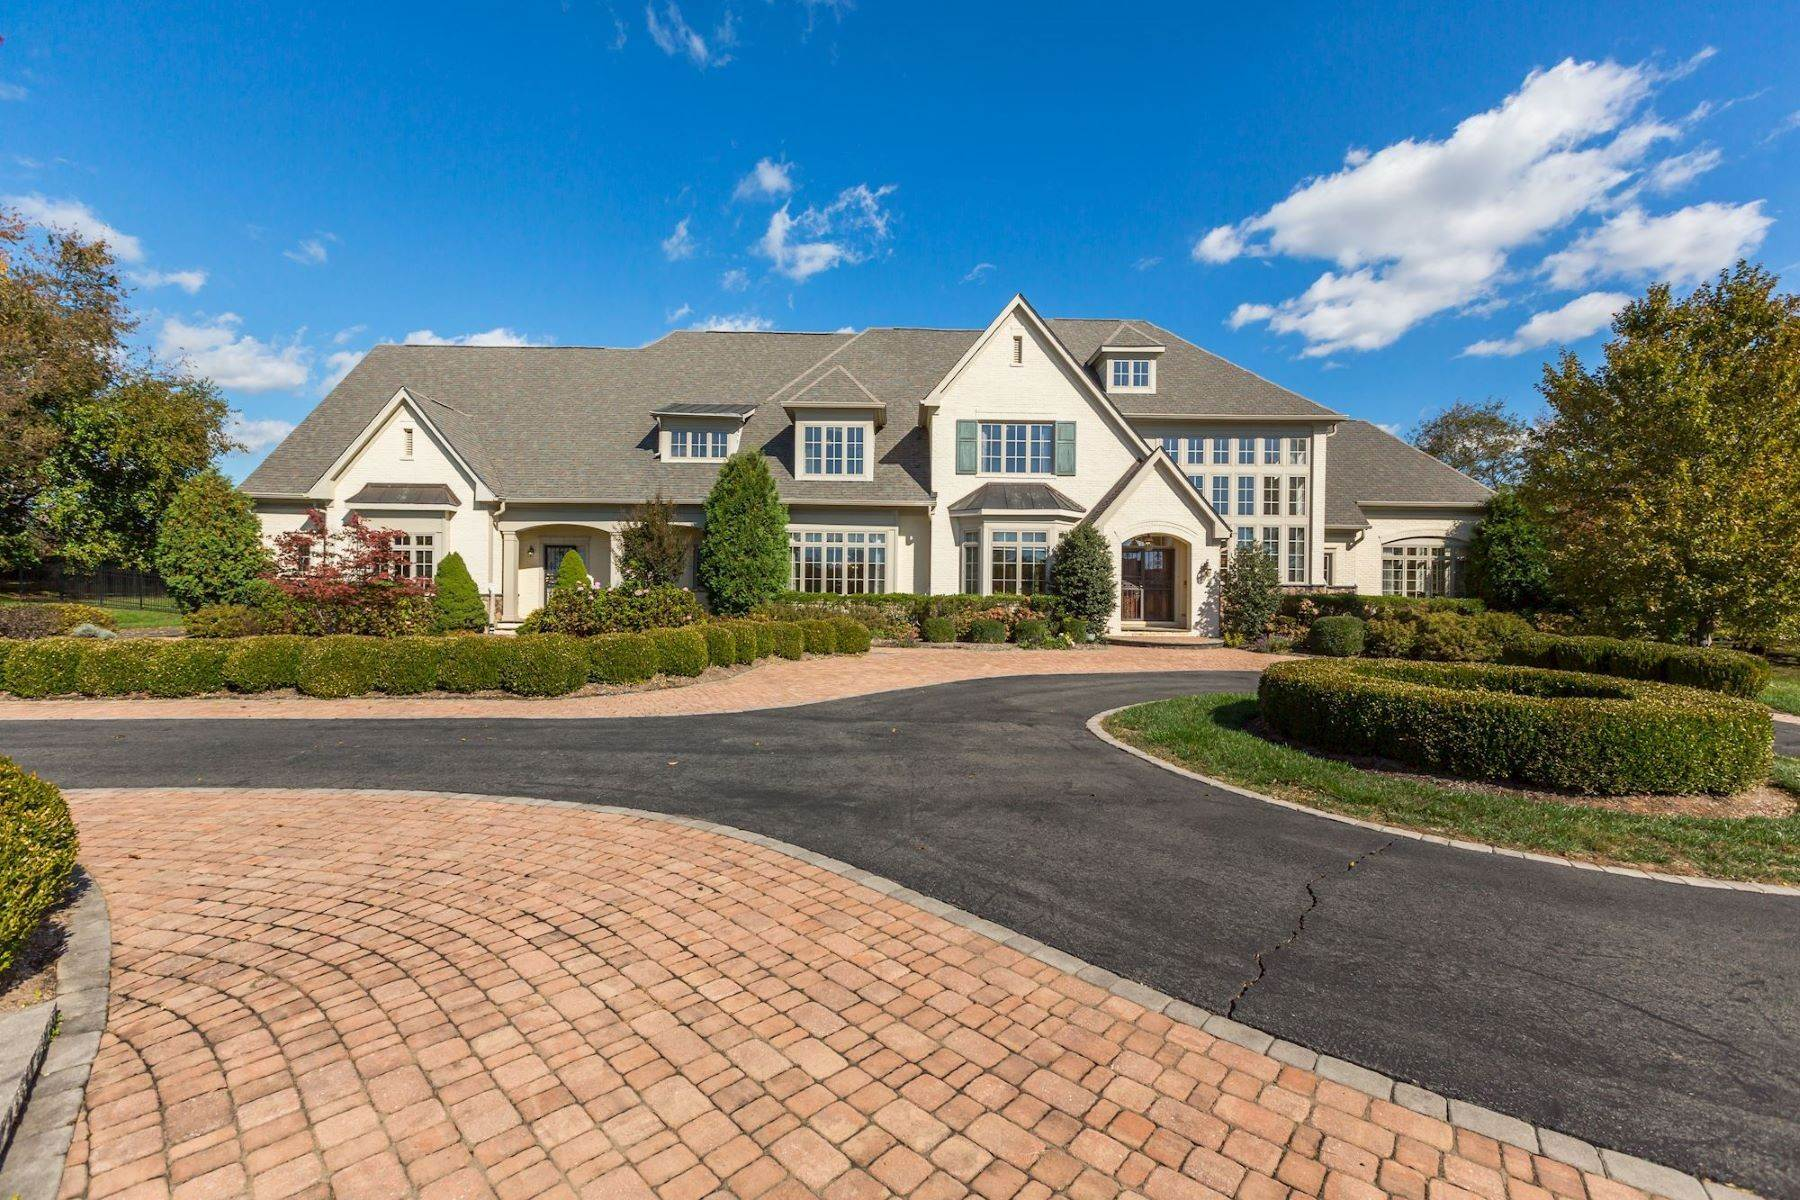 Single Family Homes for Sale at Executive Grenata Estate 40471 Grenta Preserve Place, Leesburg, Virginia, 20175 United States